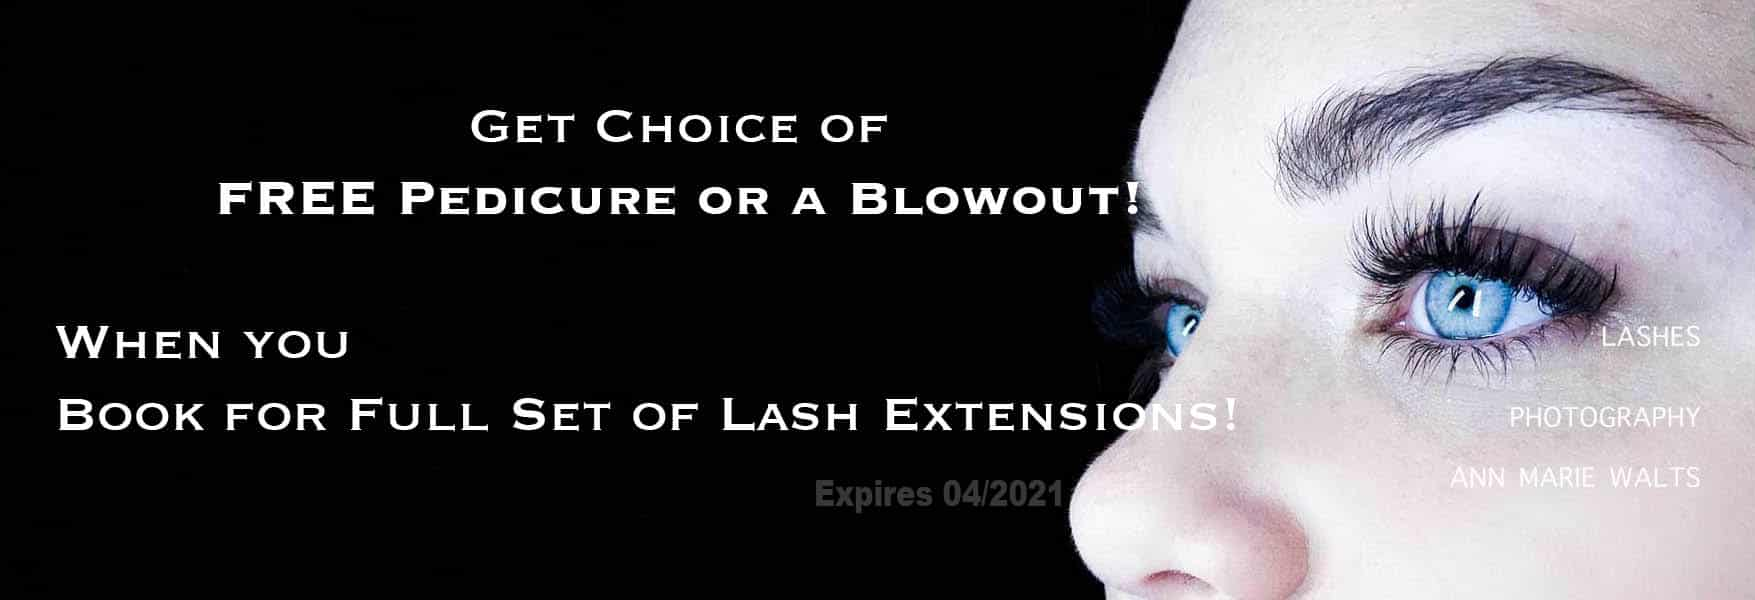 Free Blowout or Pedicure with Set of Lashes copy